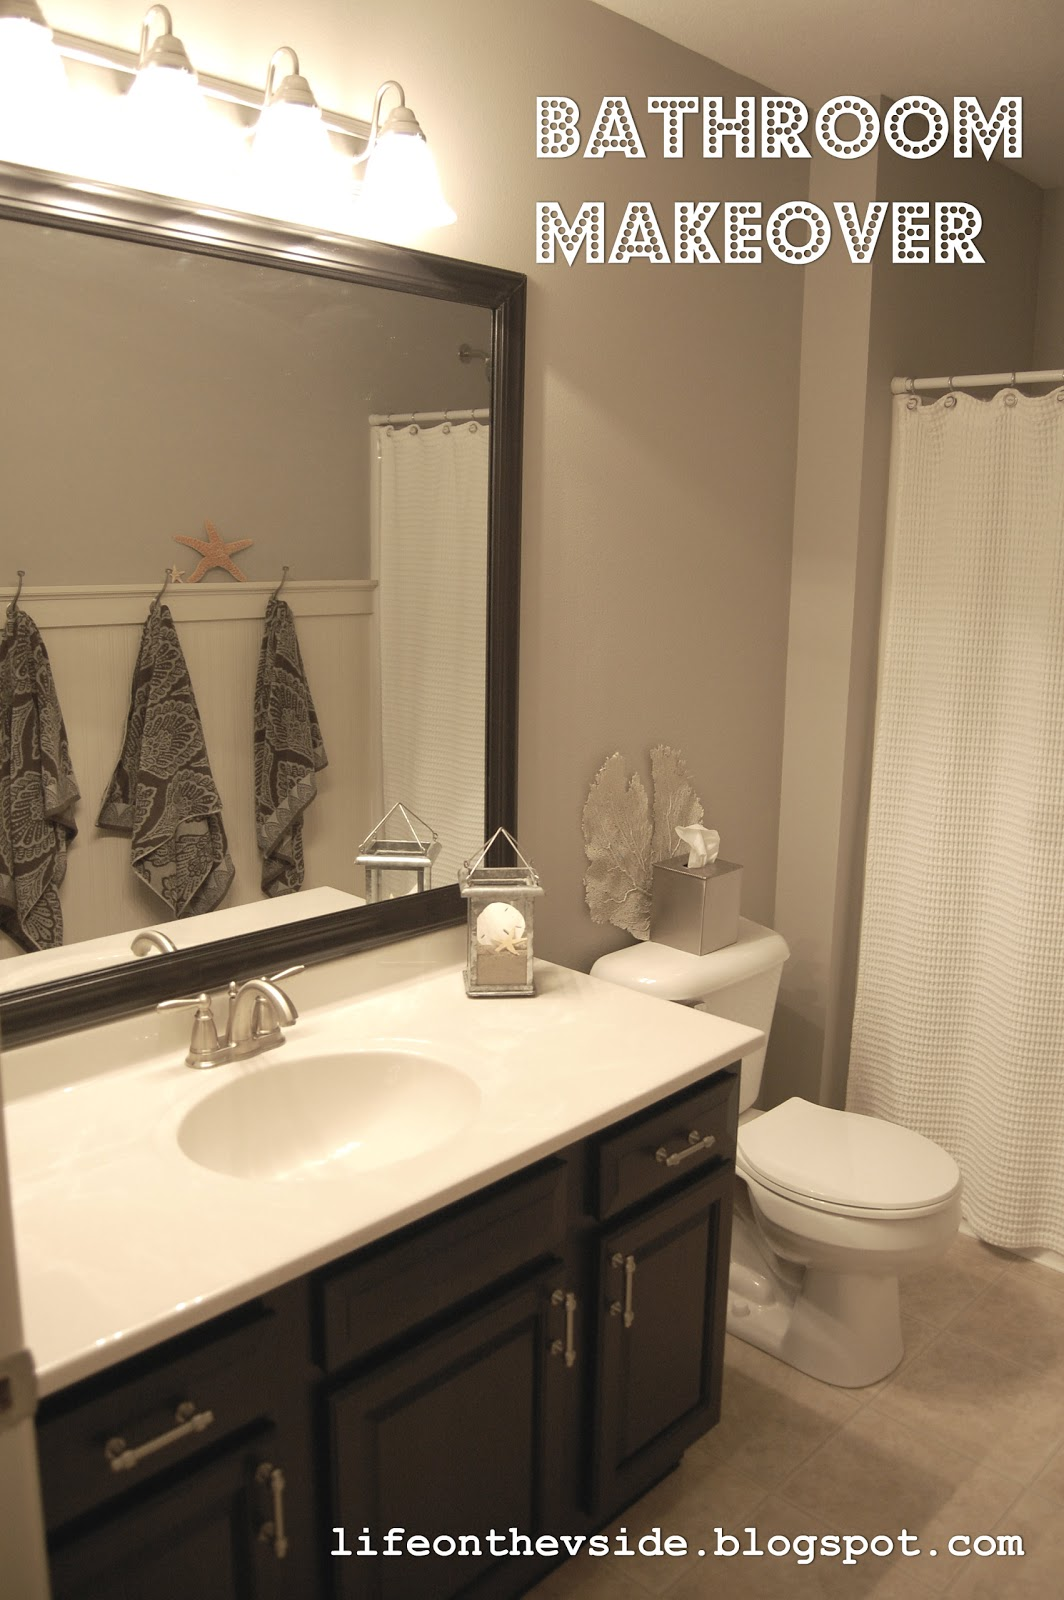 Redo My Bathroom 28 Images Start At Home Bathroom Redo Bathroom Remodeling Awesome Bathroom